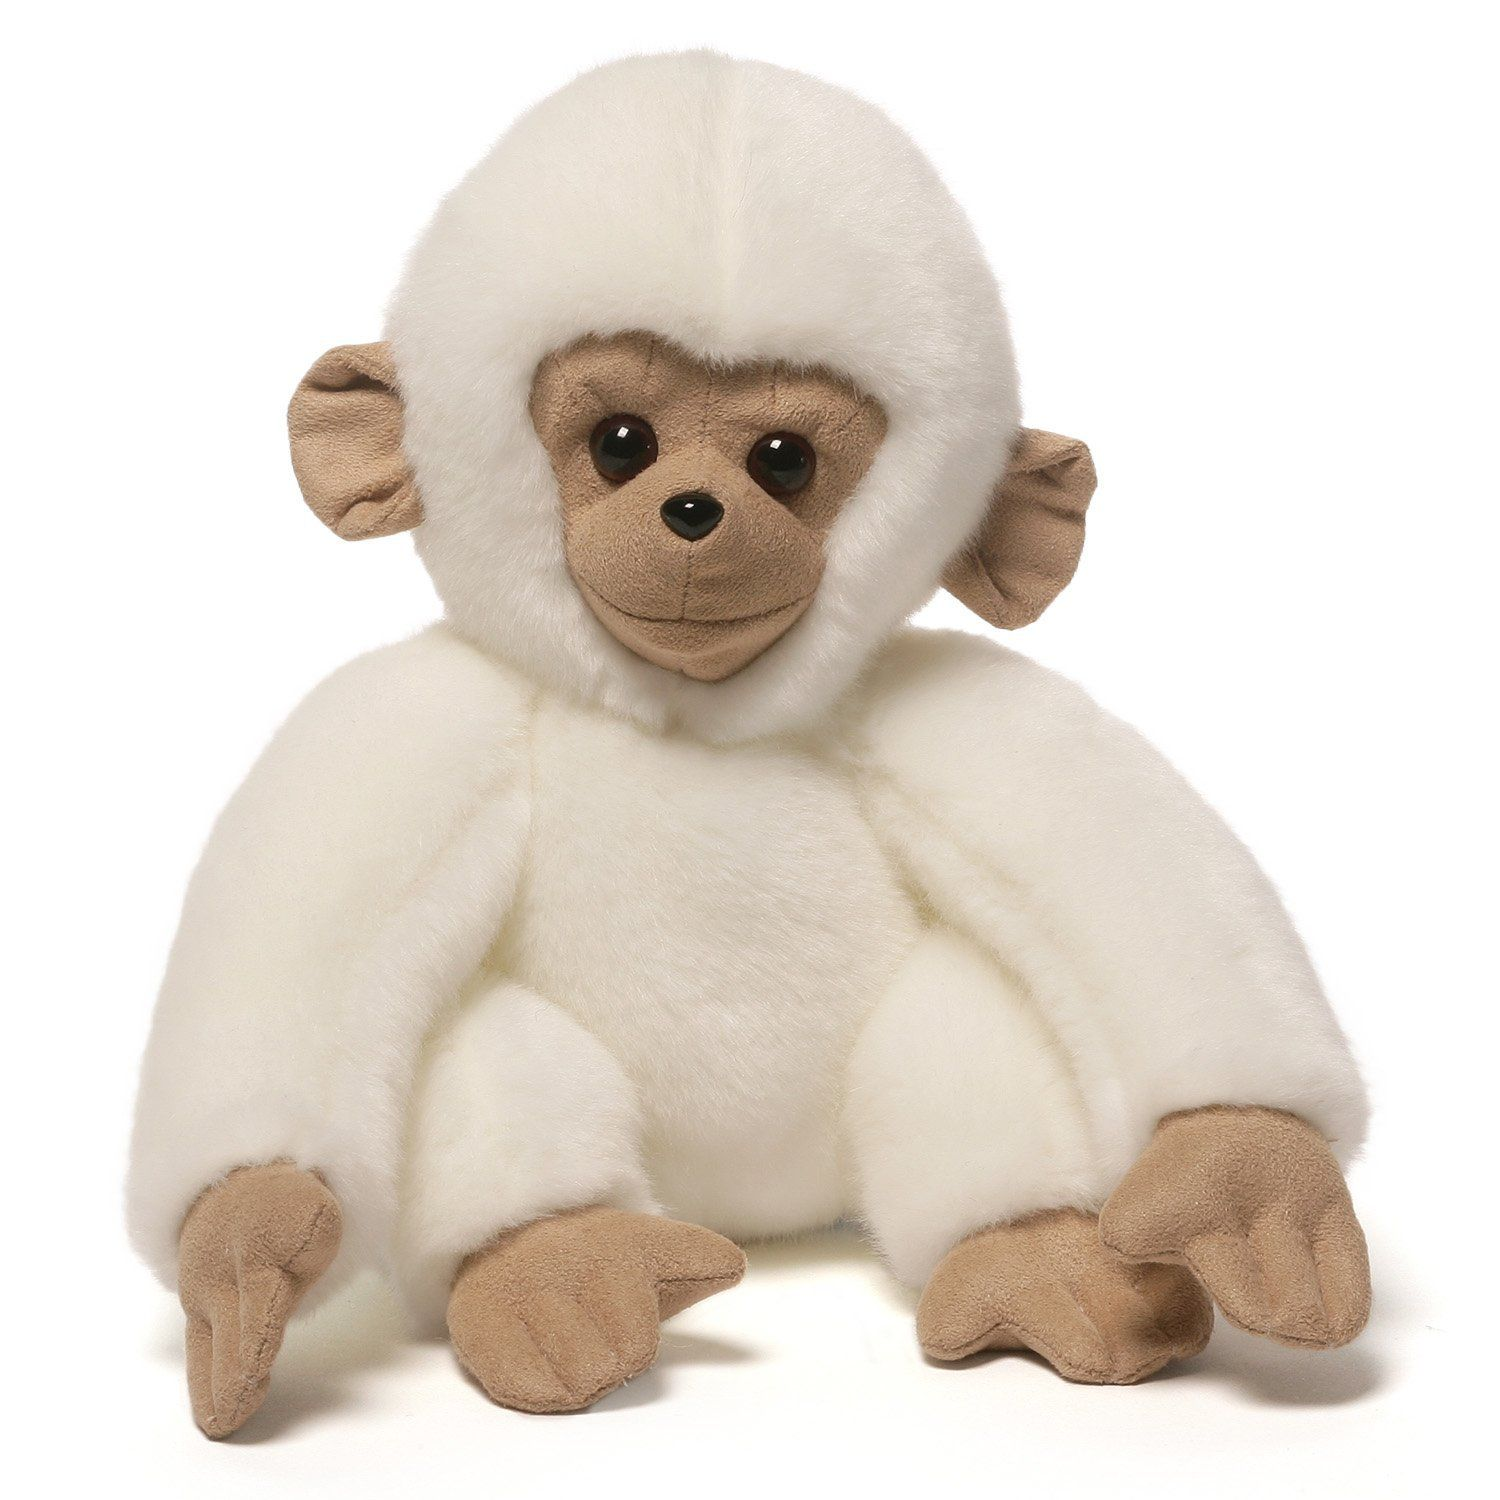 Mooch Baby Monkey 10 inch - Stuffed Animal by GUND (4056799)